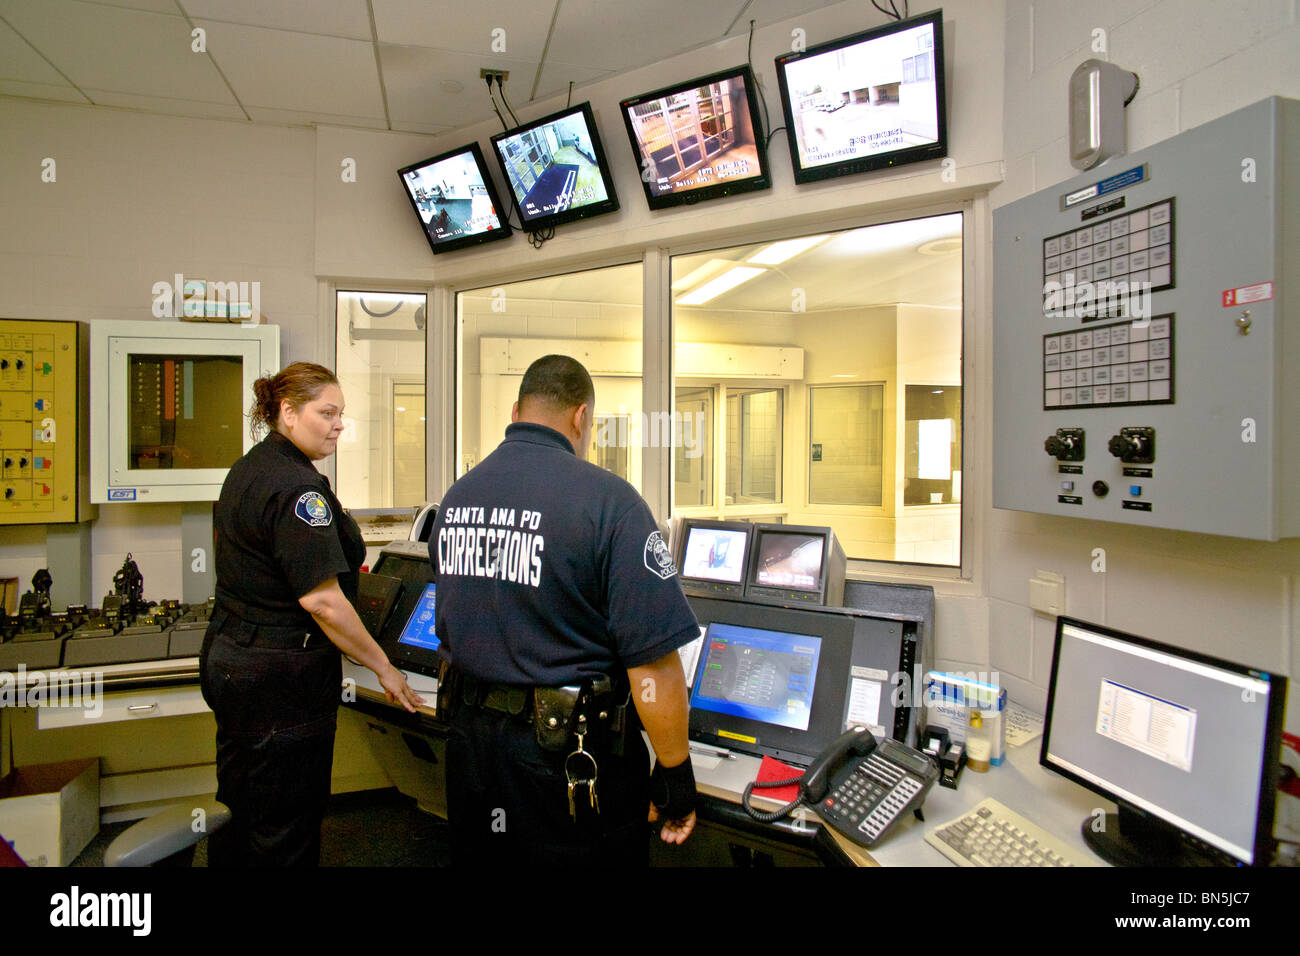 Uniformed  Hispanic corrections officers operate the electronic security center of the Santa Ana, CA, city jail. - Stock Image